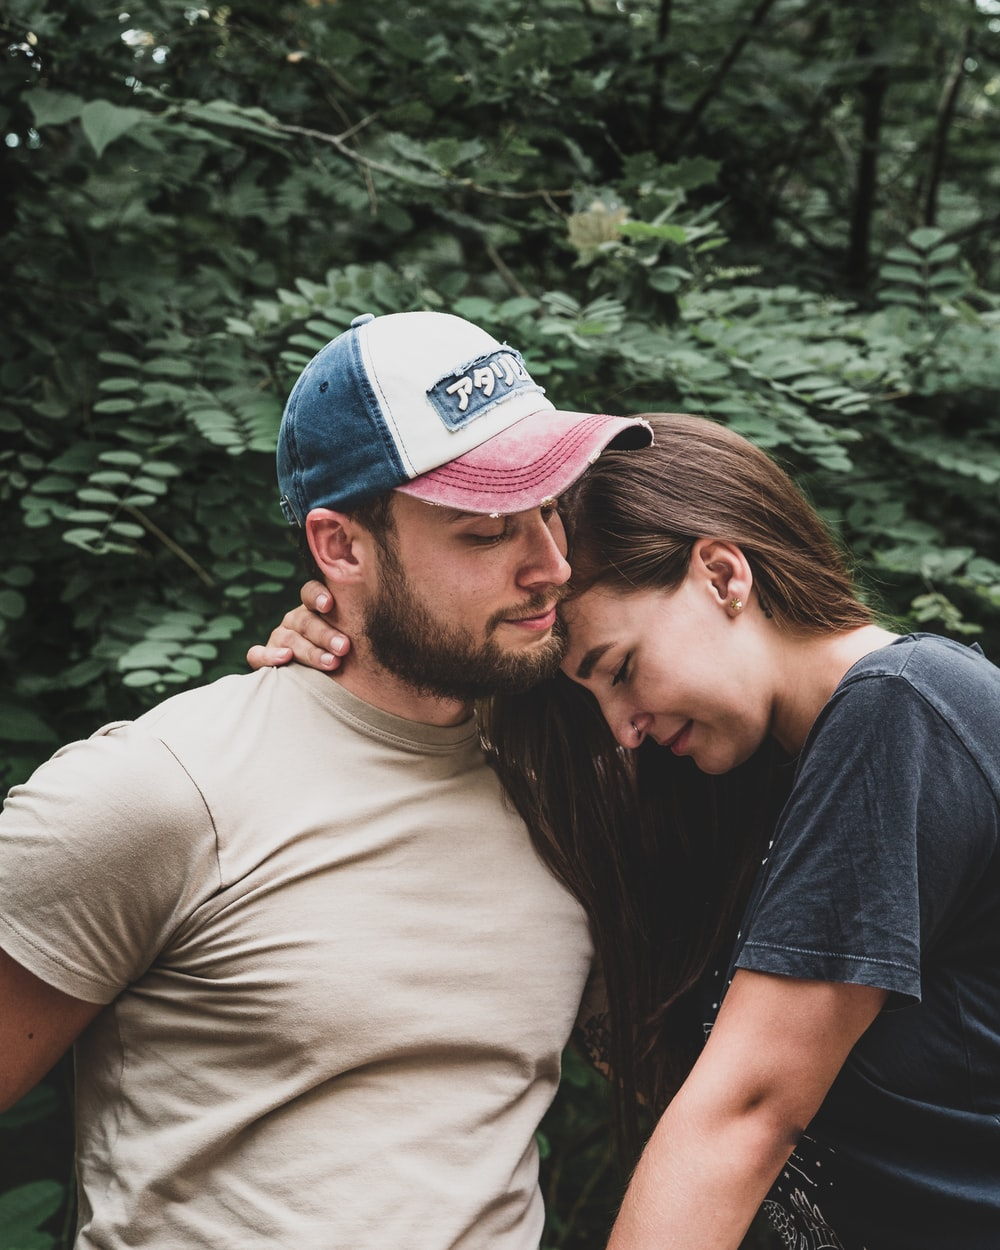 man in brown crew neck t-shirt kissing woman in blue cap